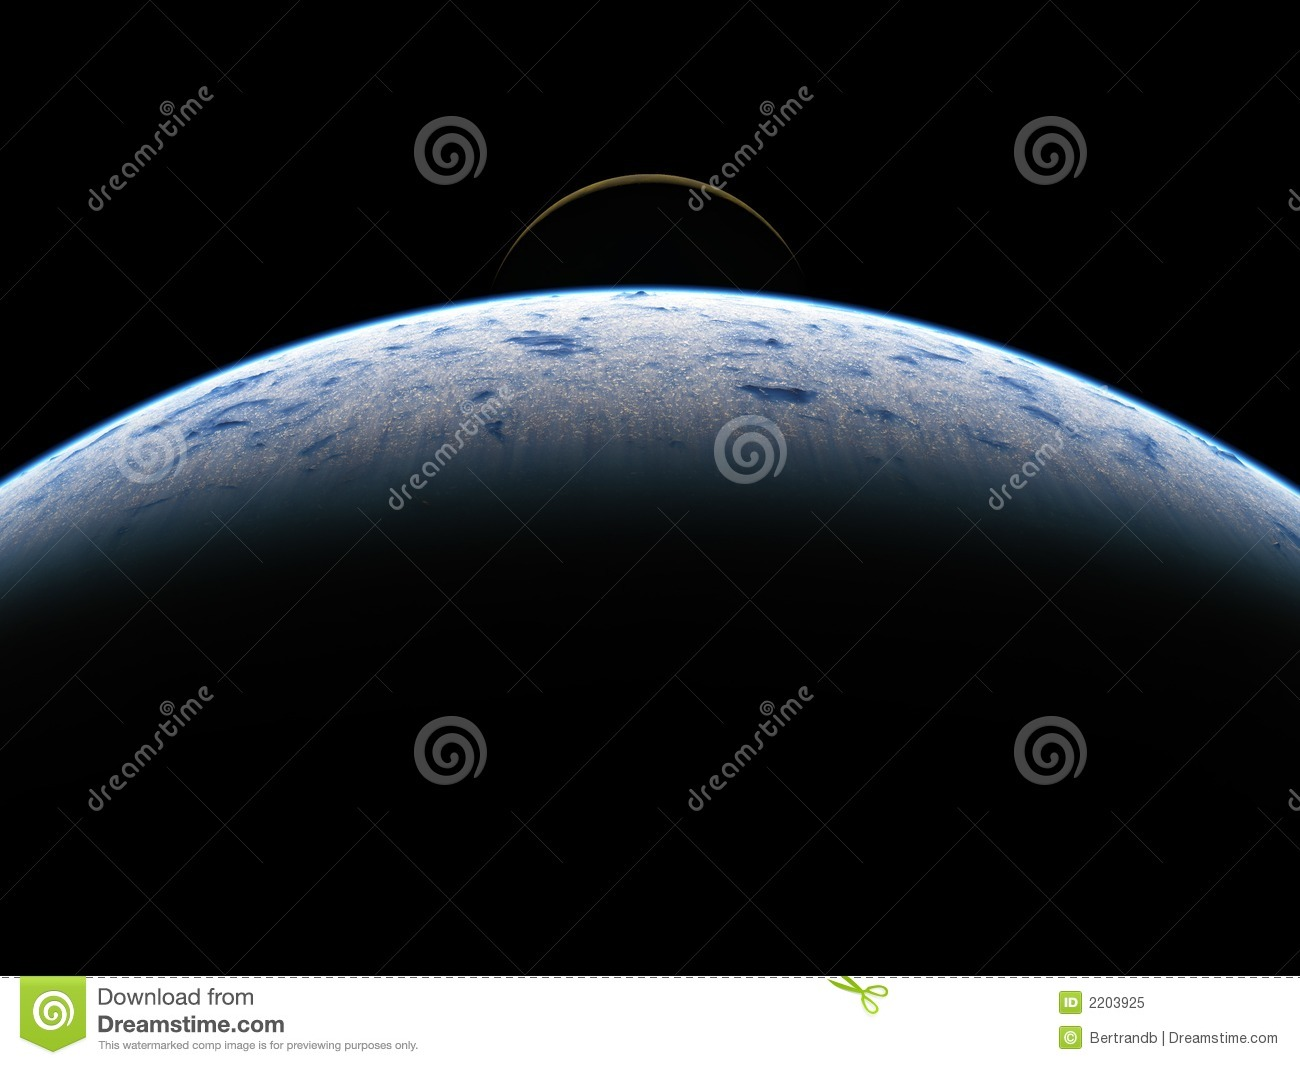 Earth and moon seen from space